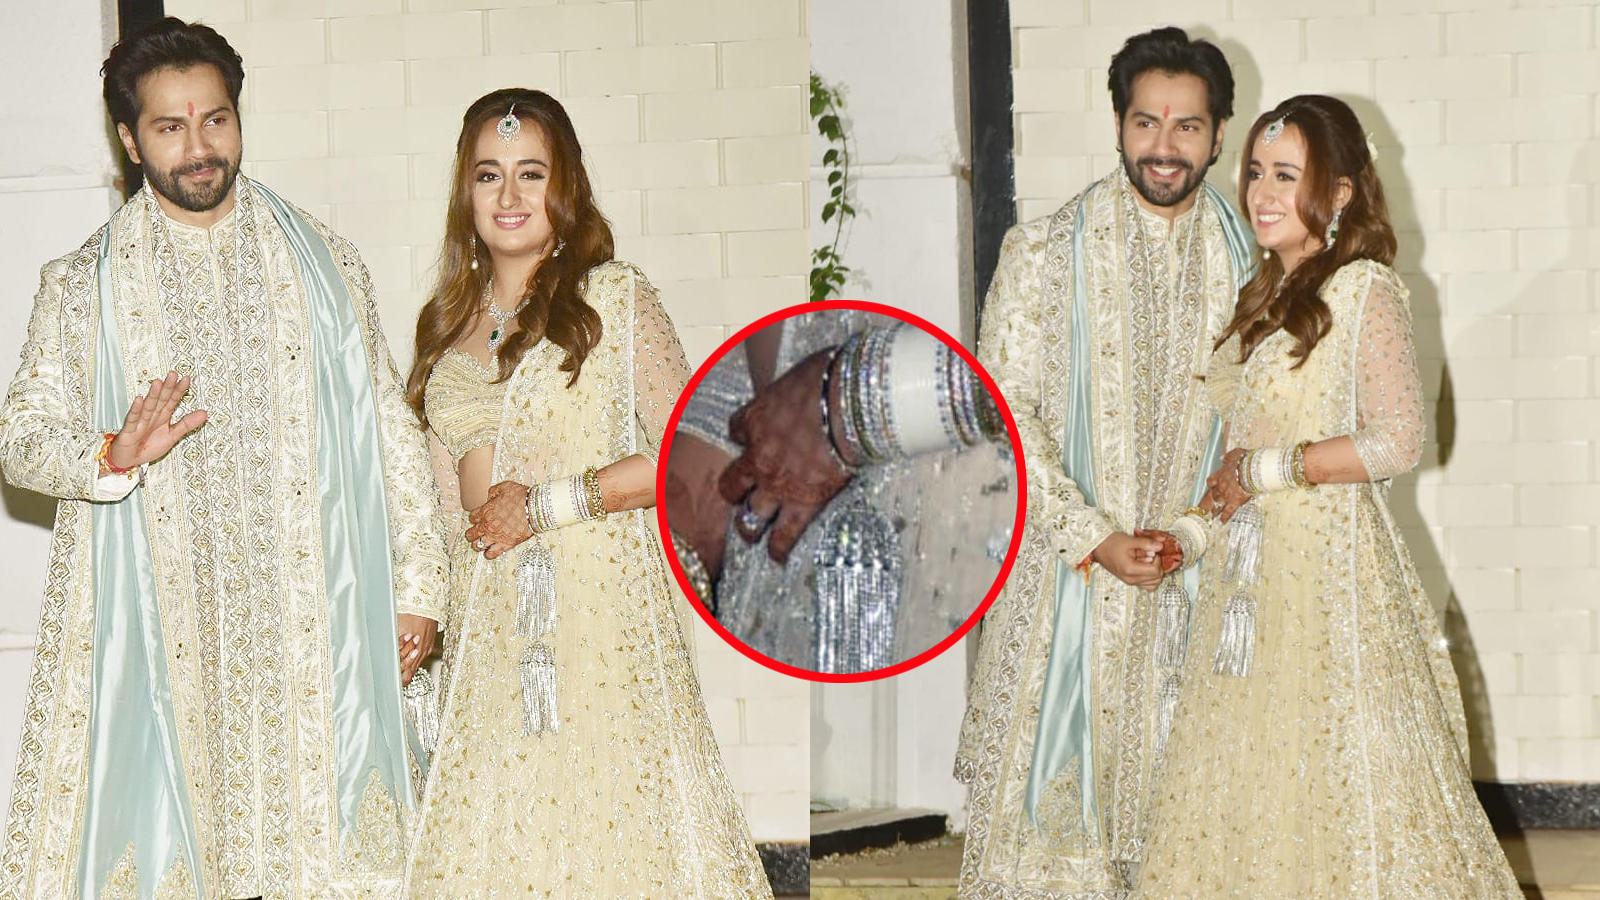 varun-dhawans-wife-natasha-dalal-flaunts-huge-diamond-ring-as-she-poses-with-husband-for-the-first-time-as-a-married-couple